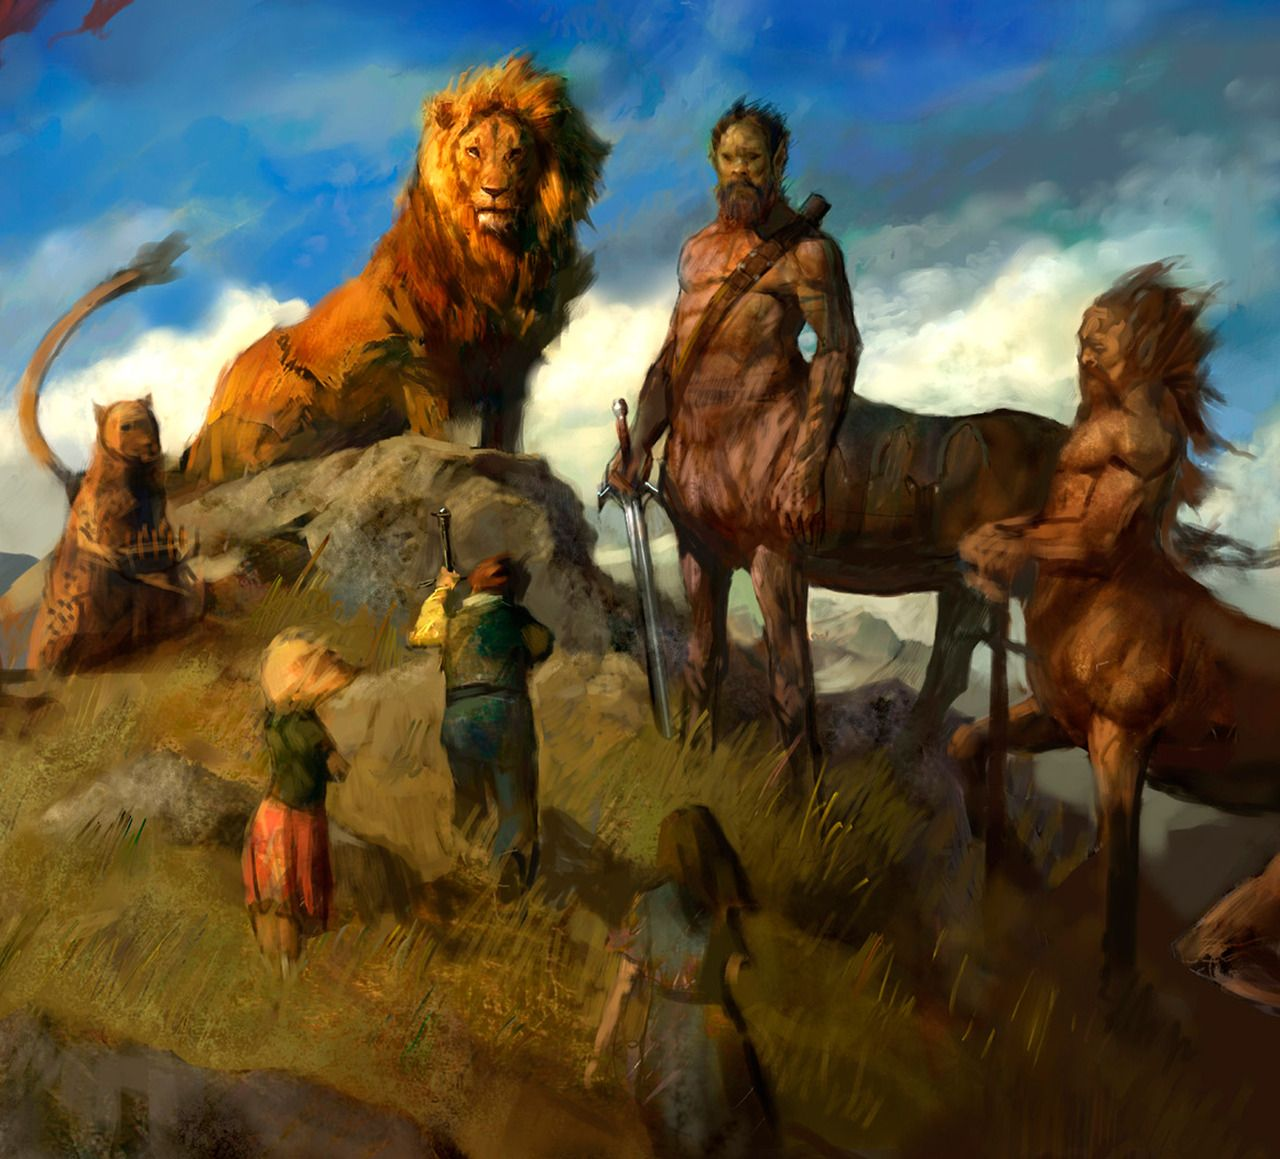 Aslan and his counsel. The Art Of Animation, Justin Sweet